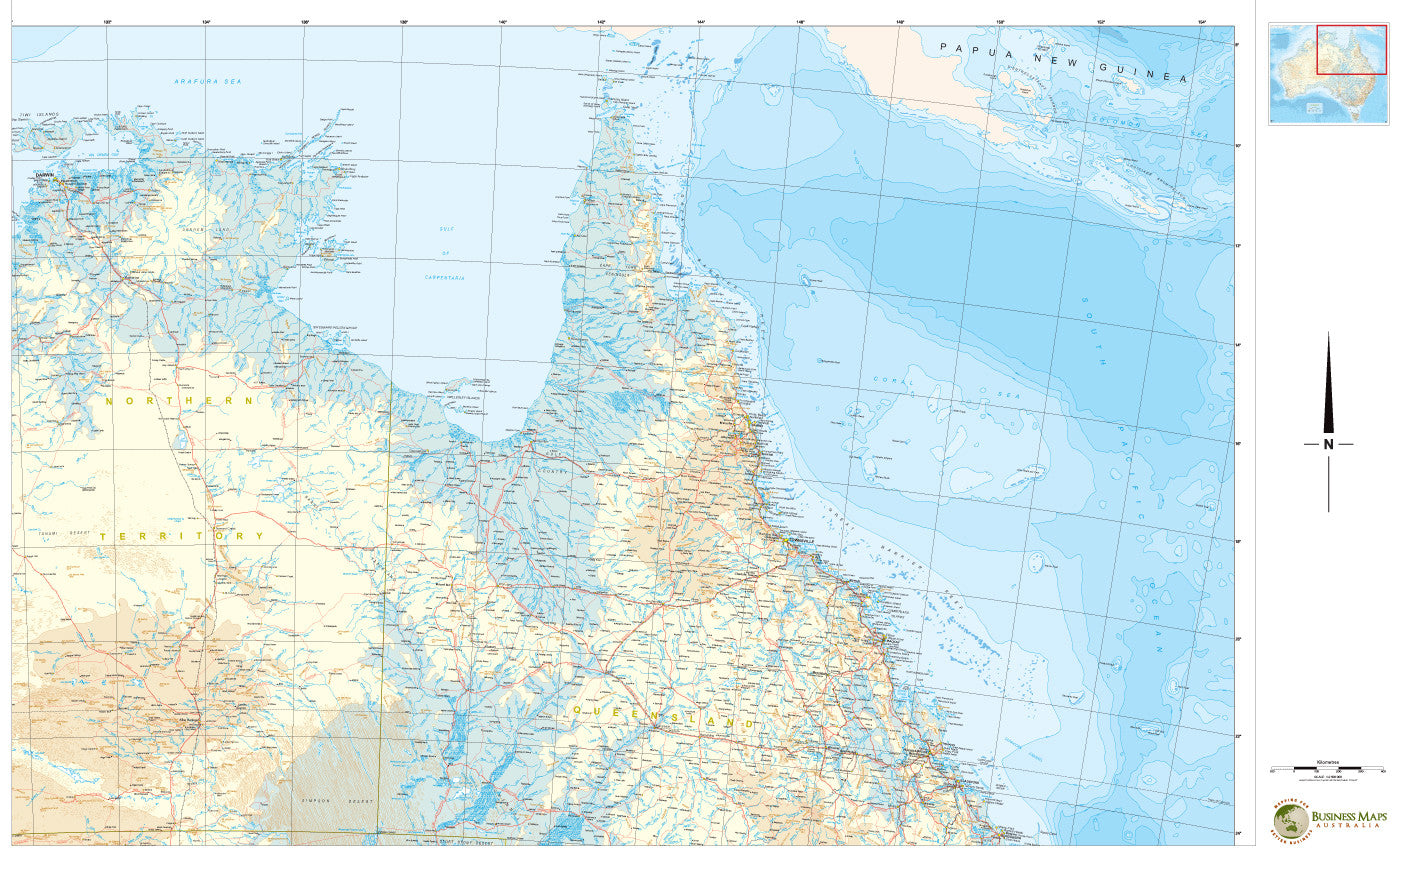 Map Of North East Australia.North East Australia Cyclone Tracking 1150 X 850mm Bma Laminated Wall Map